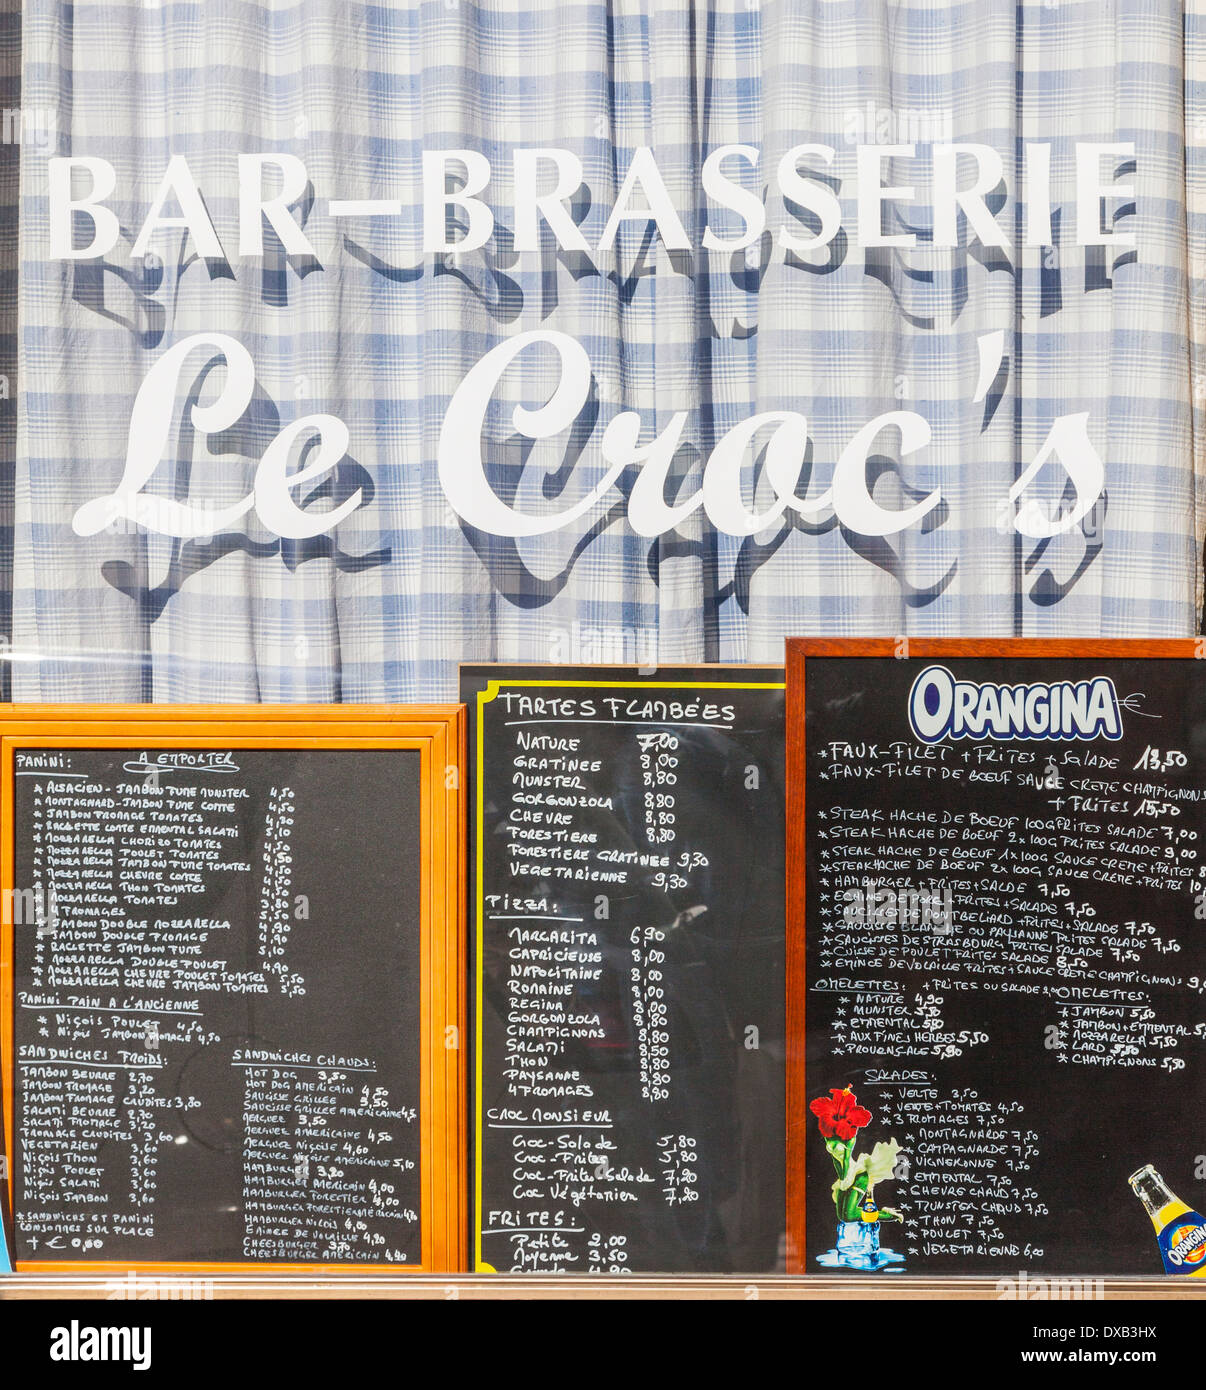 Bar brasserie menu and window in the old town of Colmar, Alsace, France. - Stock Image